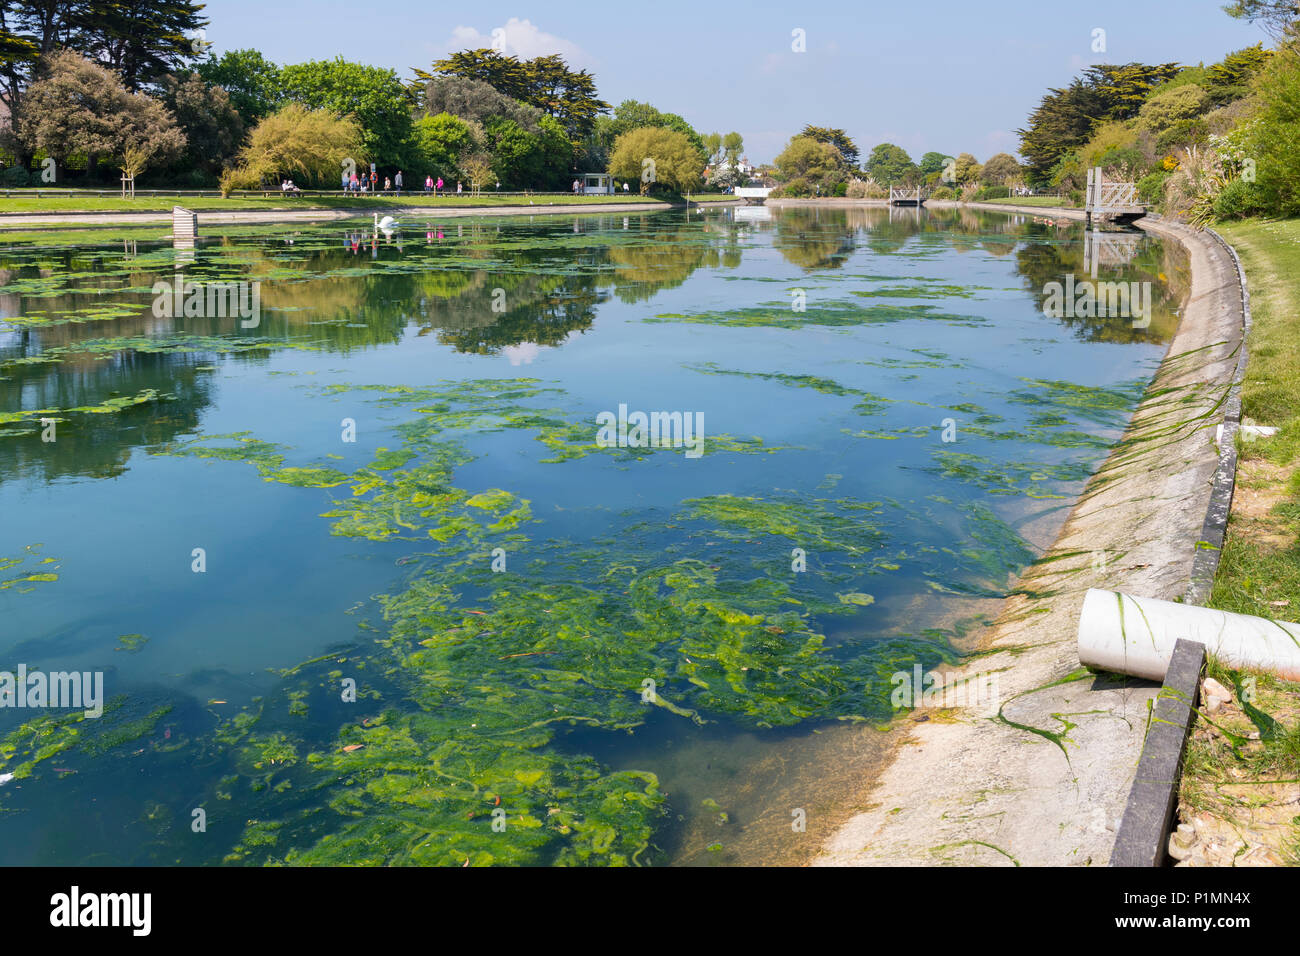 Green algae in a lake after warm weather in late Spring in Mewsbrook Park, Littlehampton, West Sussex, England, UK. Stock Photo